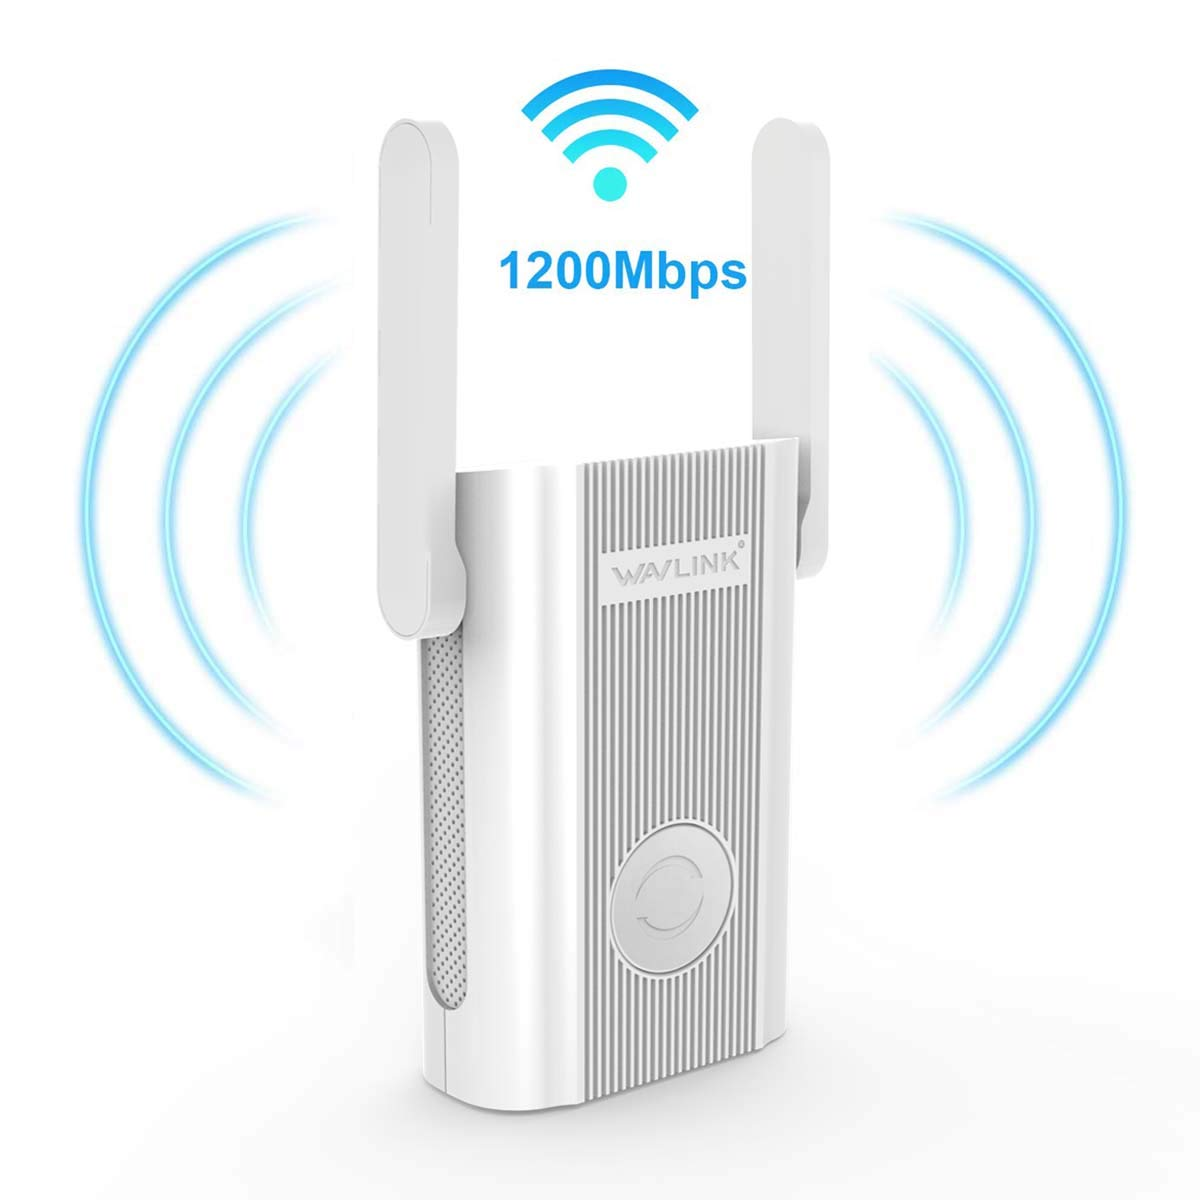 Updated Version 1200Mbps WiFi Extender Plug in Wall, WAVLINK AC1200 Dual Band 2.4 + 5Ghz WiFi Range Extender Wi-Fi Repeater Wireless Signal Booster/Access Point AP with Ethernet Port for Gaming by WAVLINK